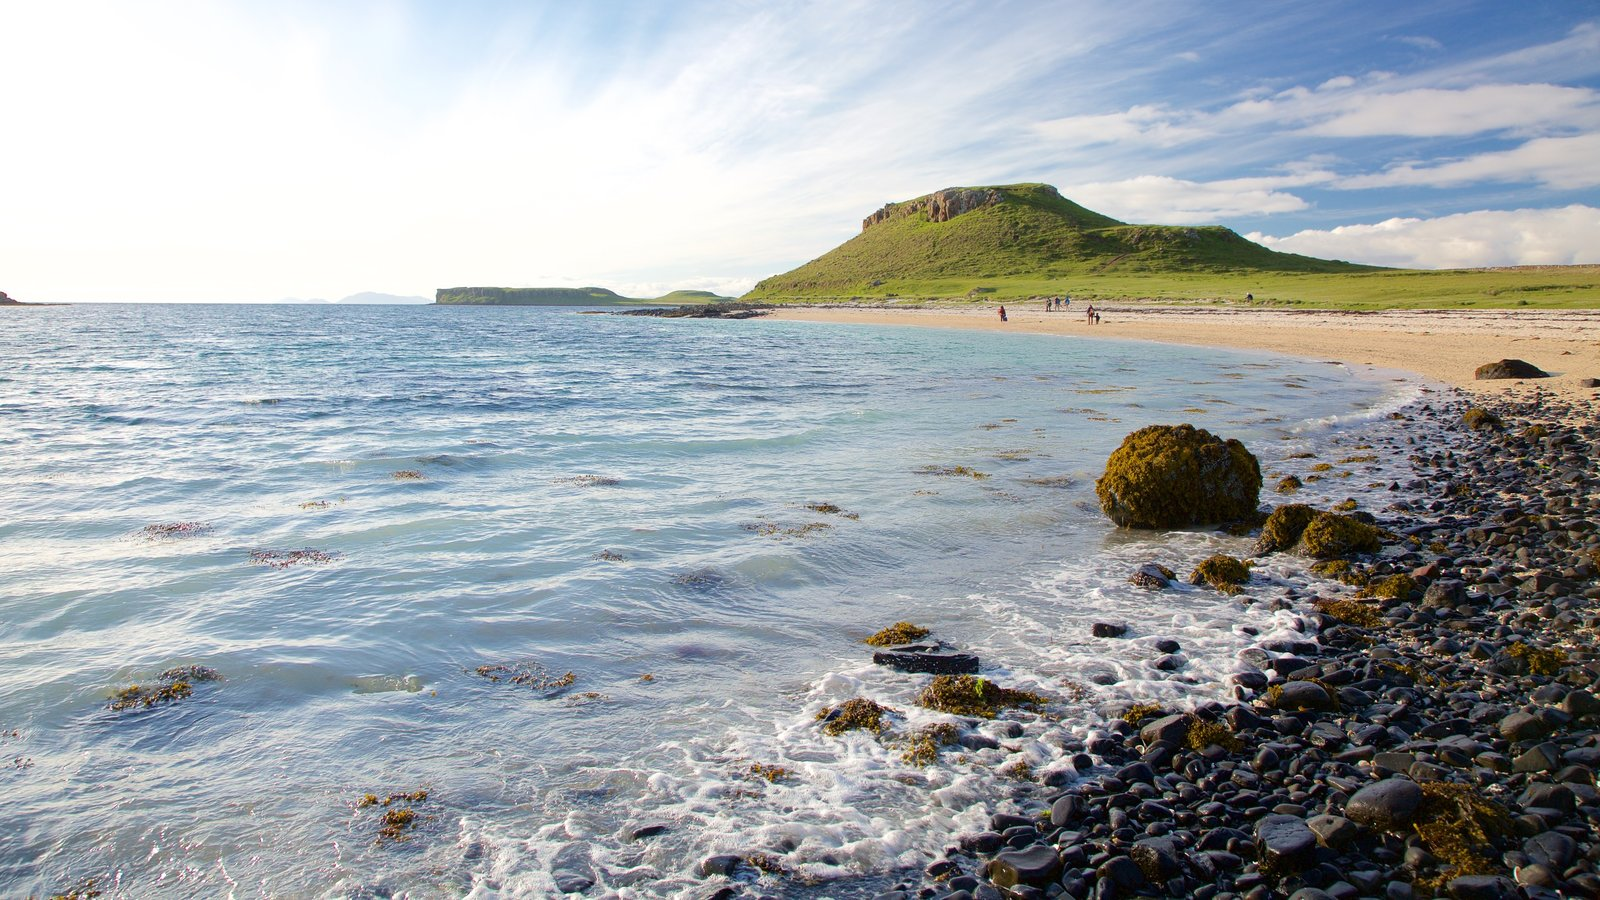 Isle of Skye showing tranquil scenes, a pebble beach and a sandy beach